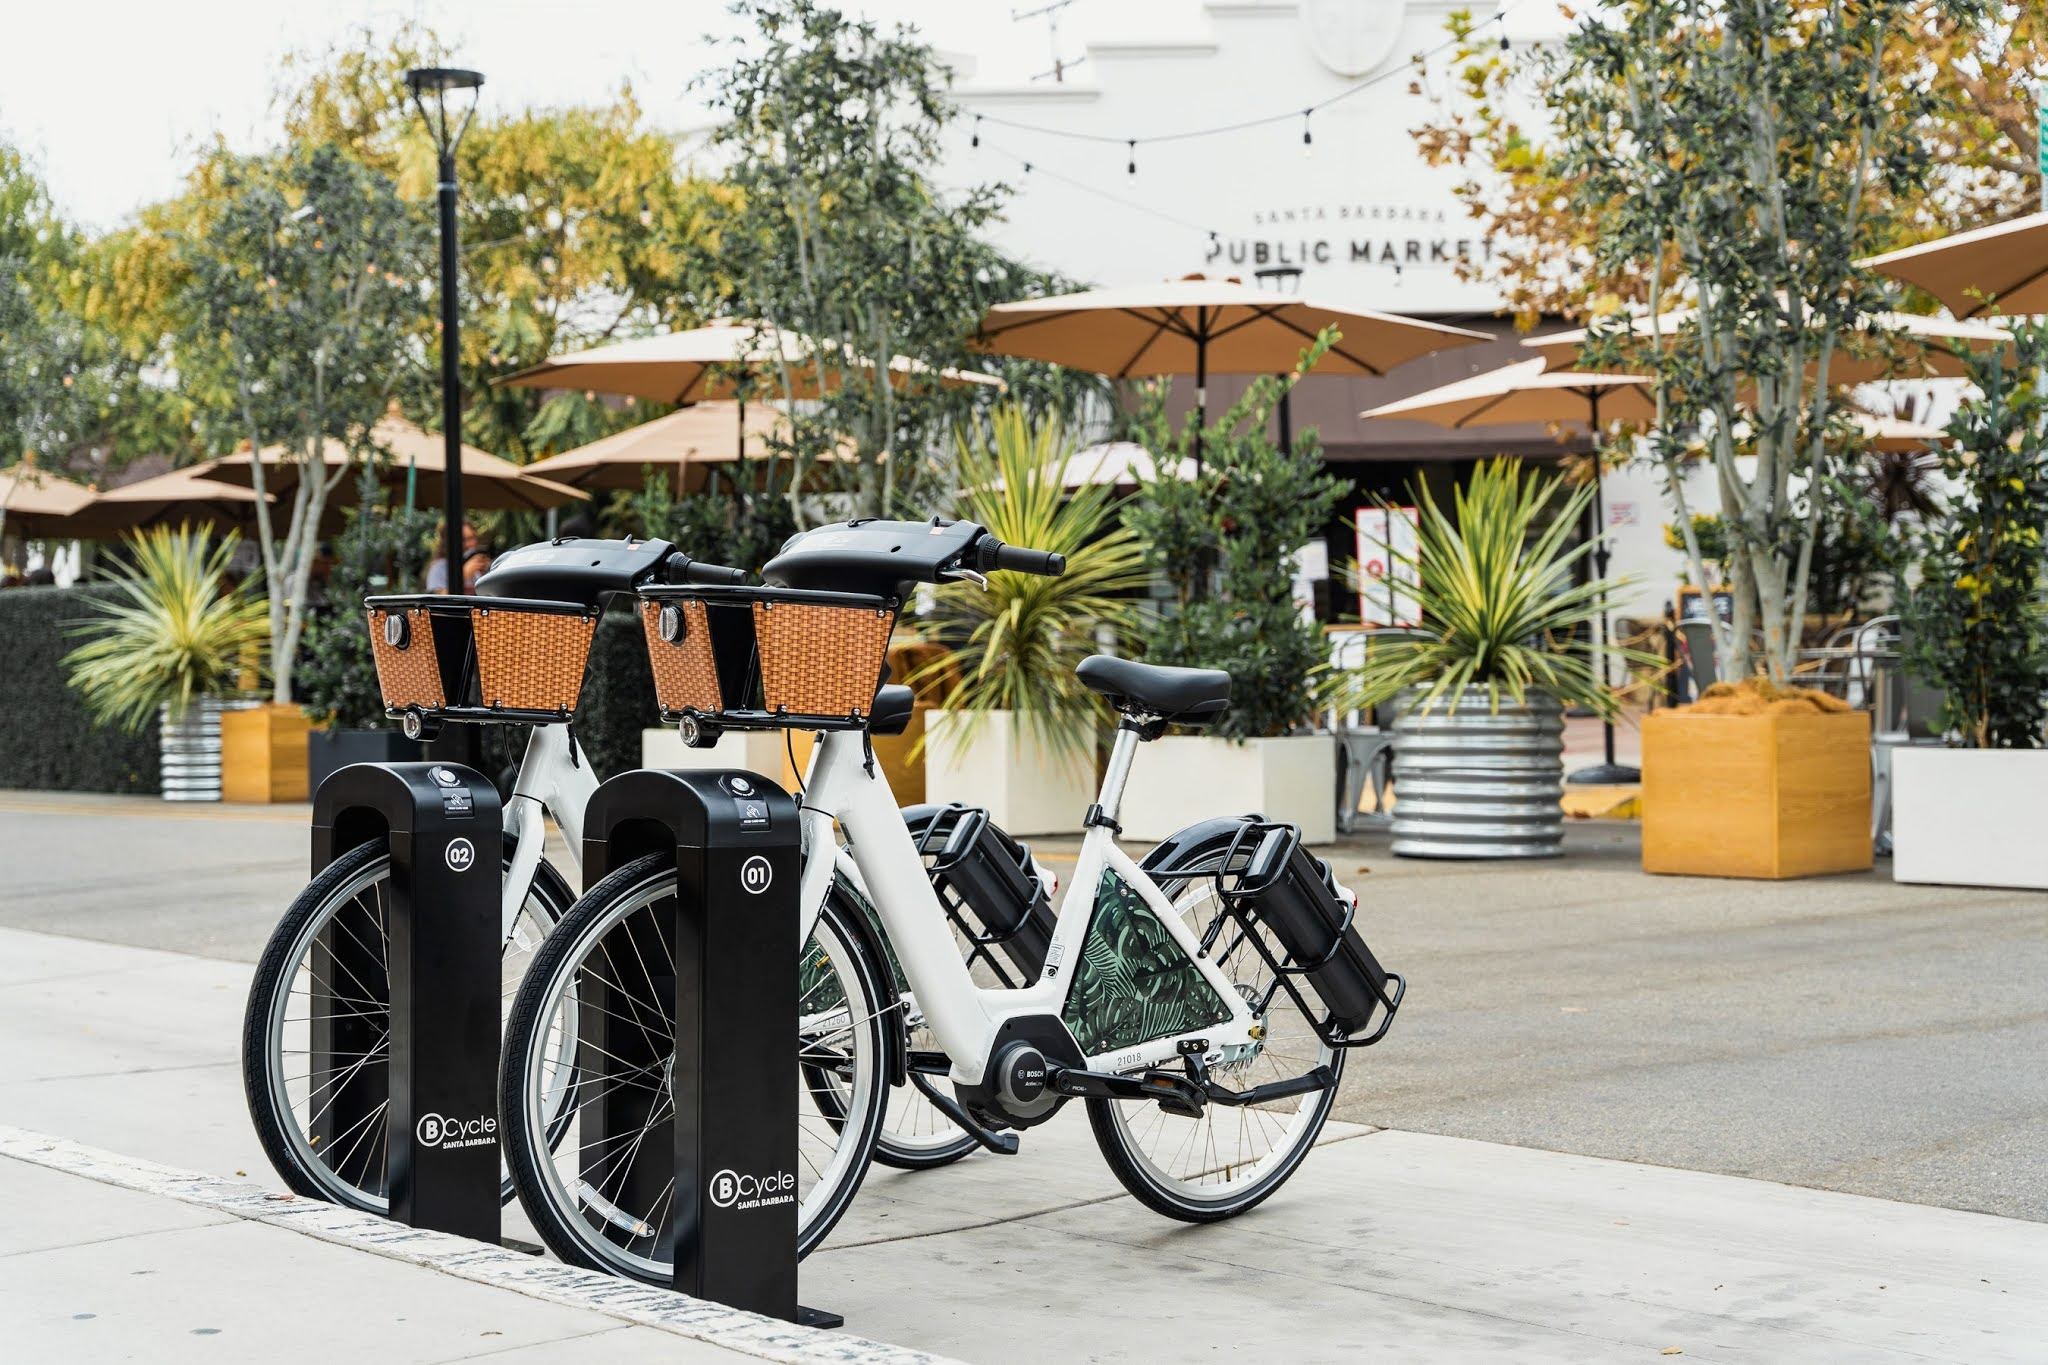 BCycle Introduces New Flexible Docking Technology